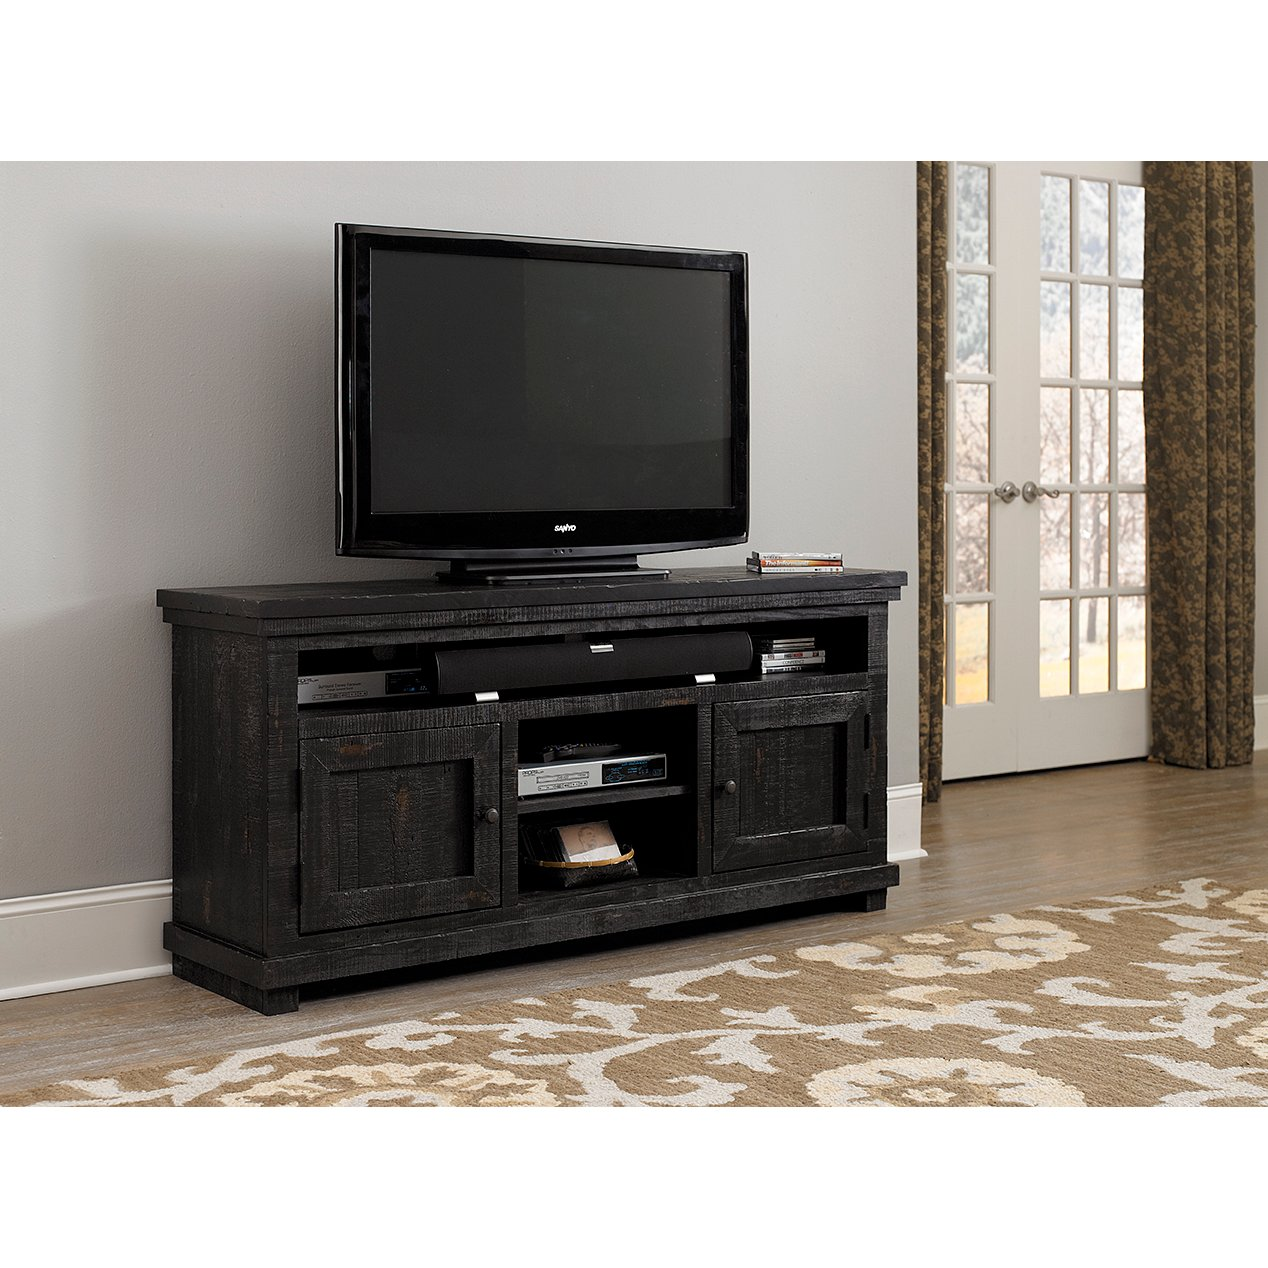 ... 64 Inch Distressed Black TV Stand   Willow